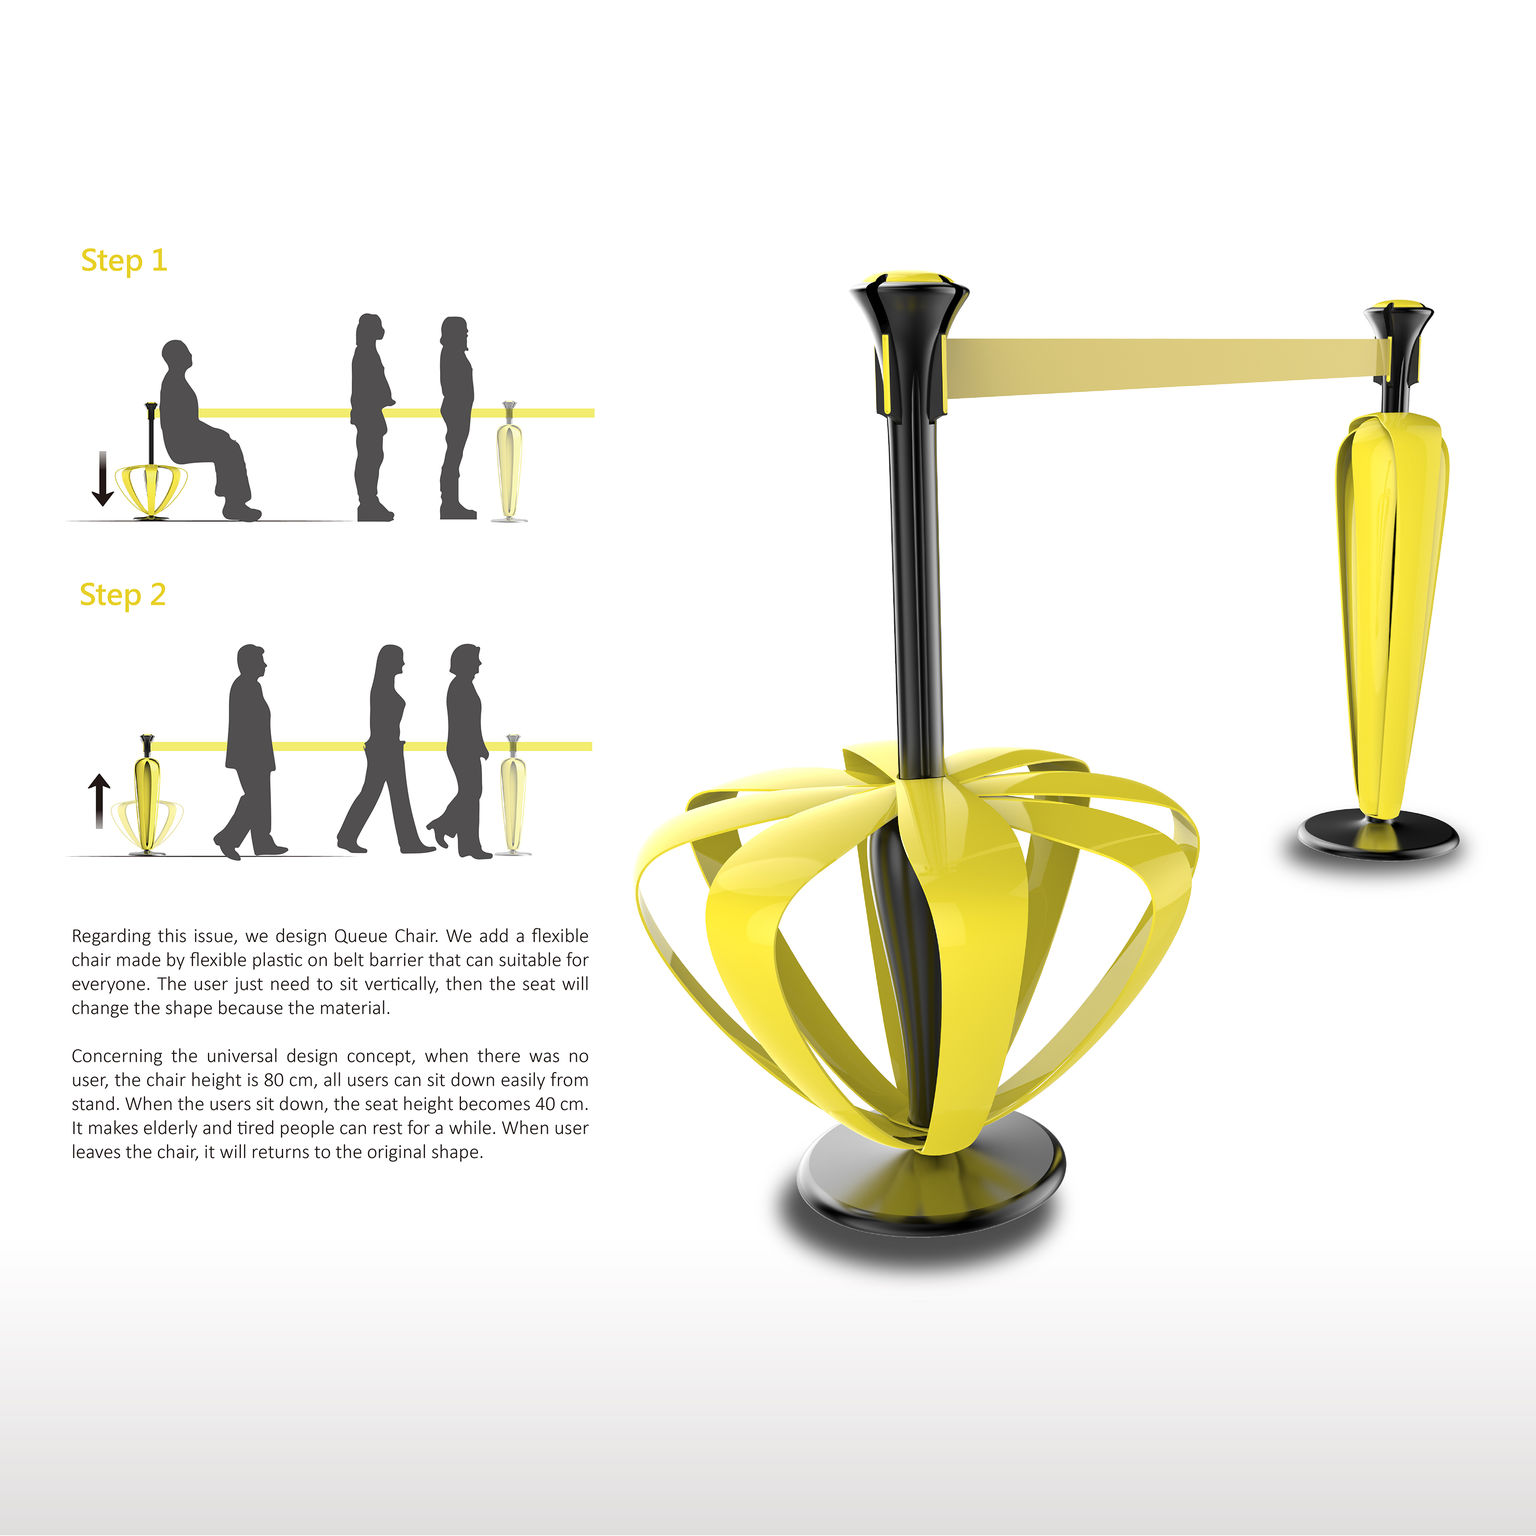 Queue Chair - Entry - iF WORLD DESIGN GUIDE